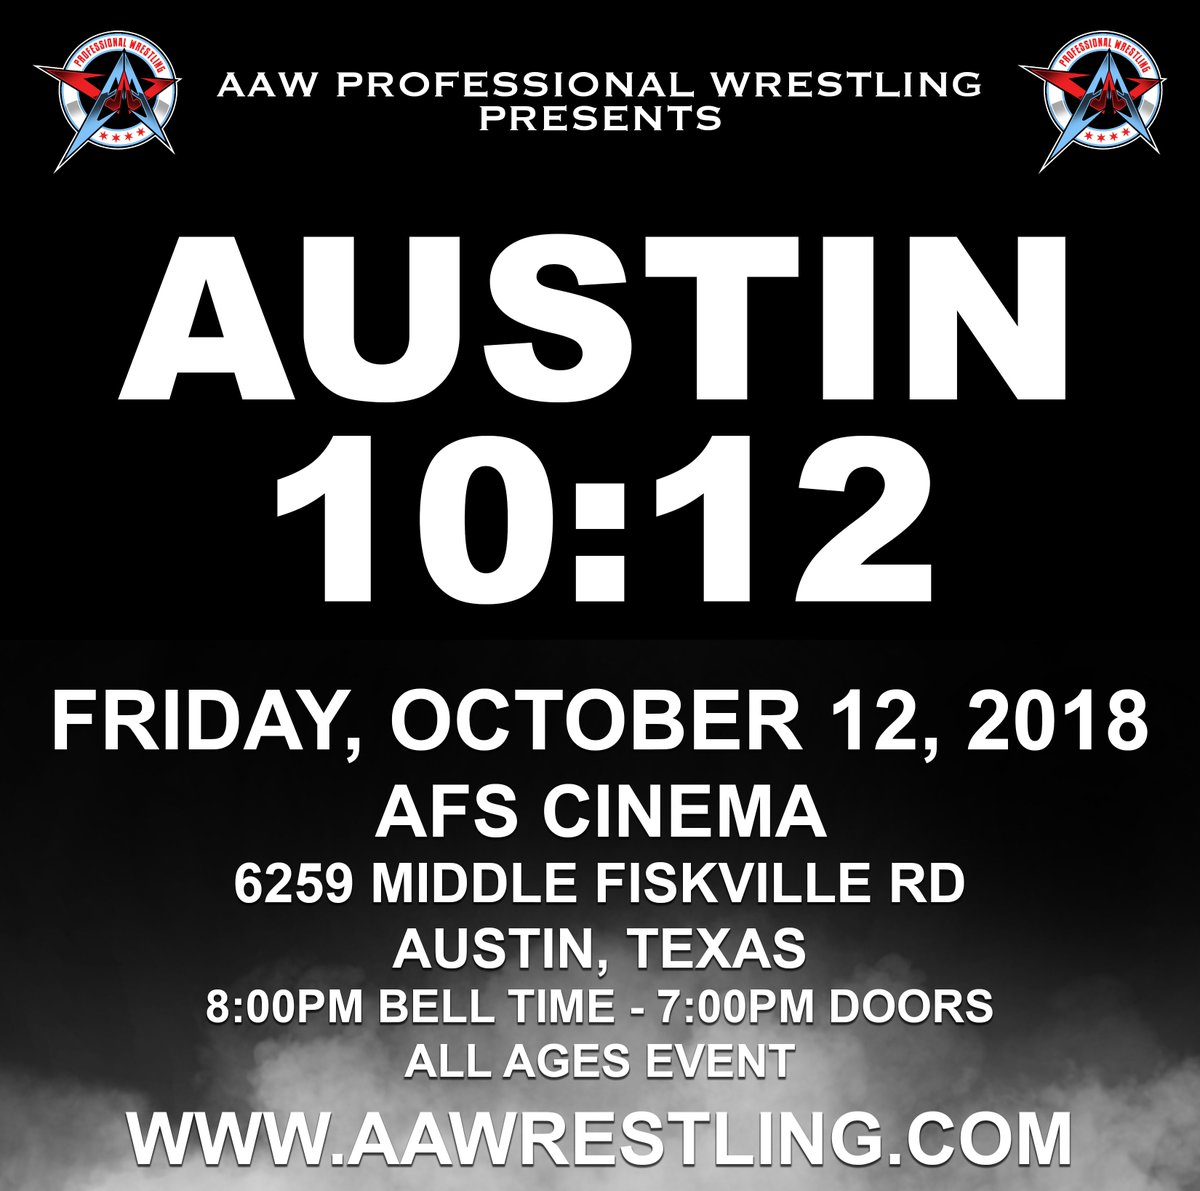 AUSTIN, TEXAS!!! HERE WE COME!!! Friday, October 12th AFS Cinema 8:00pm Tickets go on sale 8/27/18 at 7:00pm at aawrestling.com #AAWAustin #AustinTX